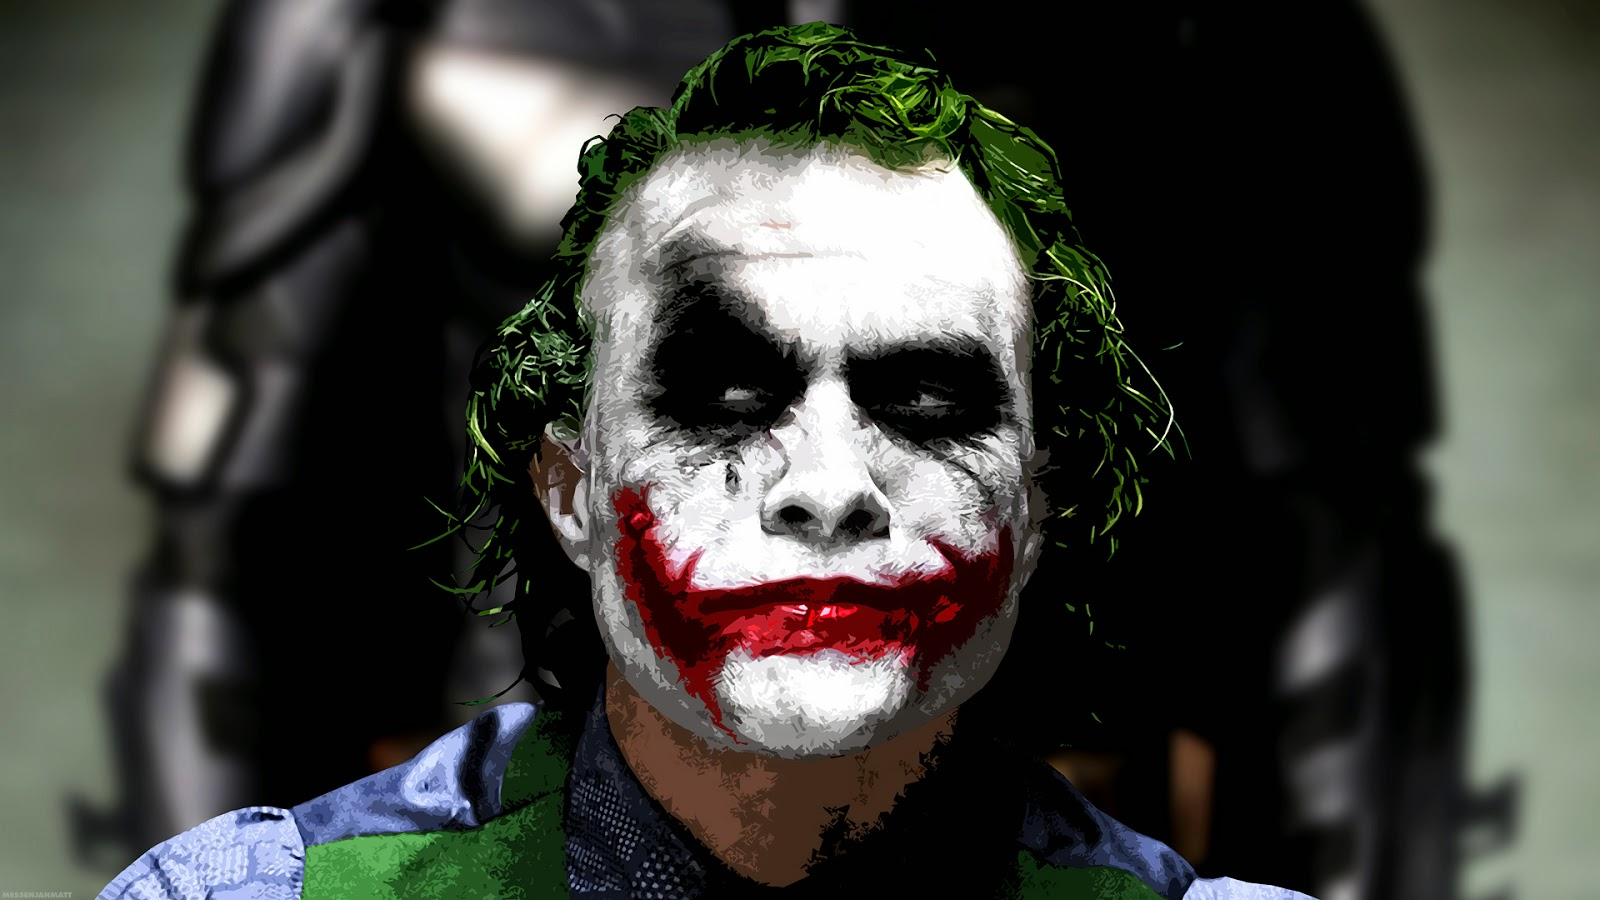 Batman Heath Ledger interpreta Joker